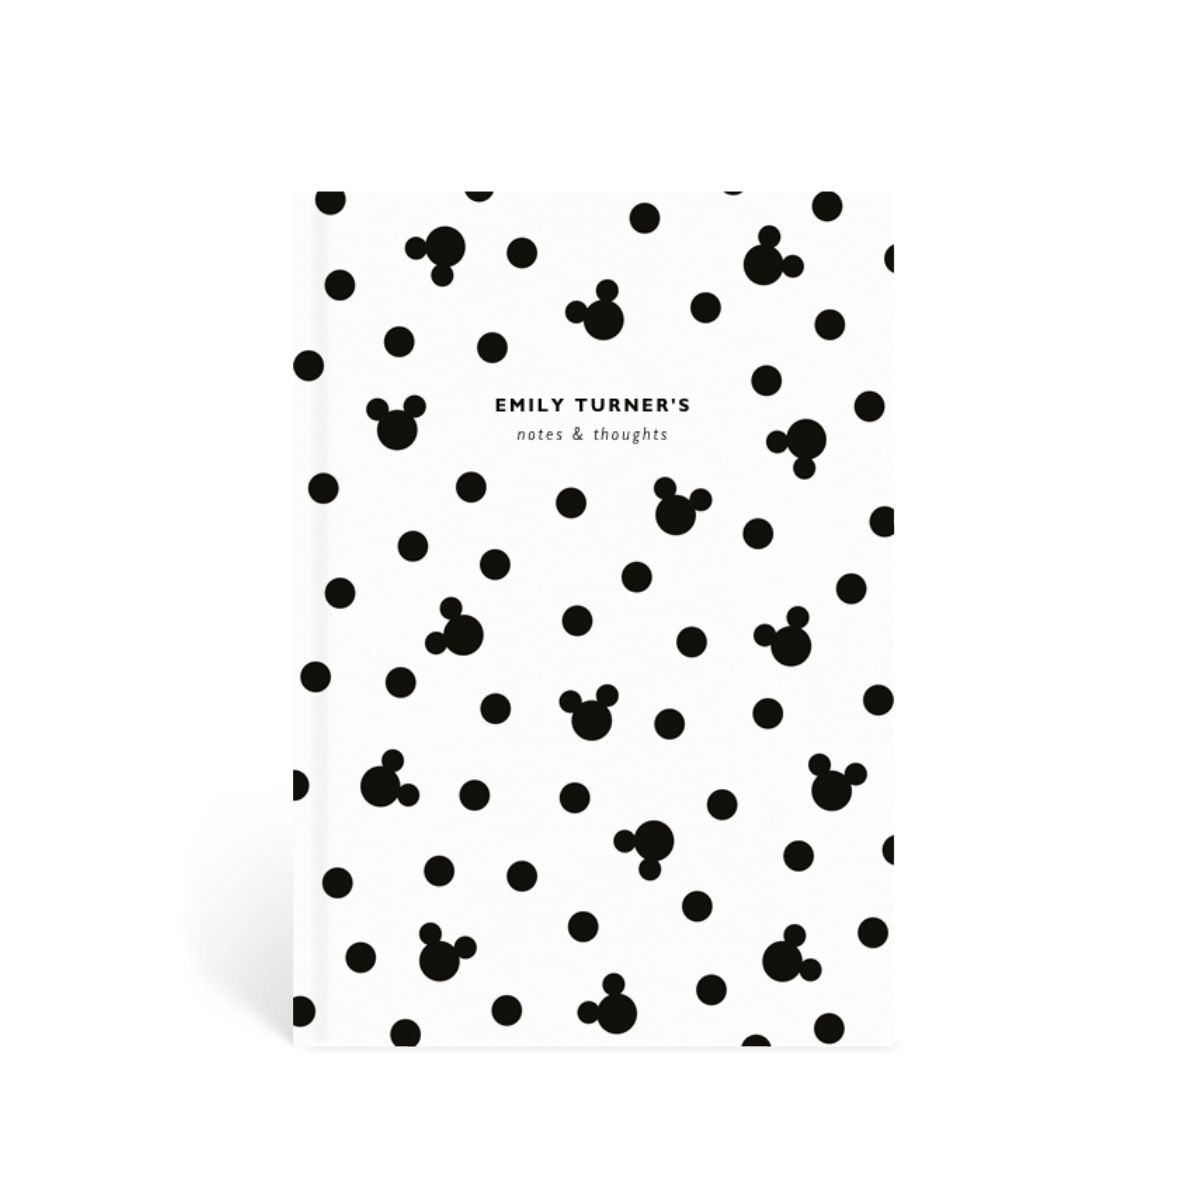 Https%3a%2f%2fwww.papier.com%2fproduct image%2f57320%2f25%2fpolka dot mickey mouse 13769 front 1569451617.png?ixlib=rb 1.1